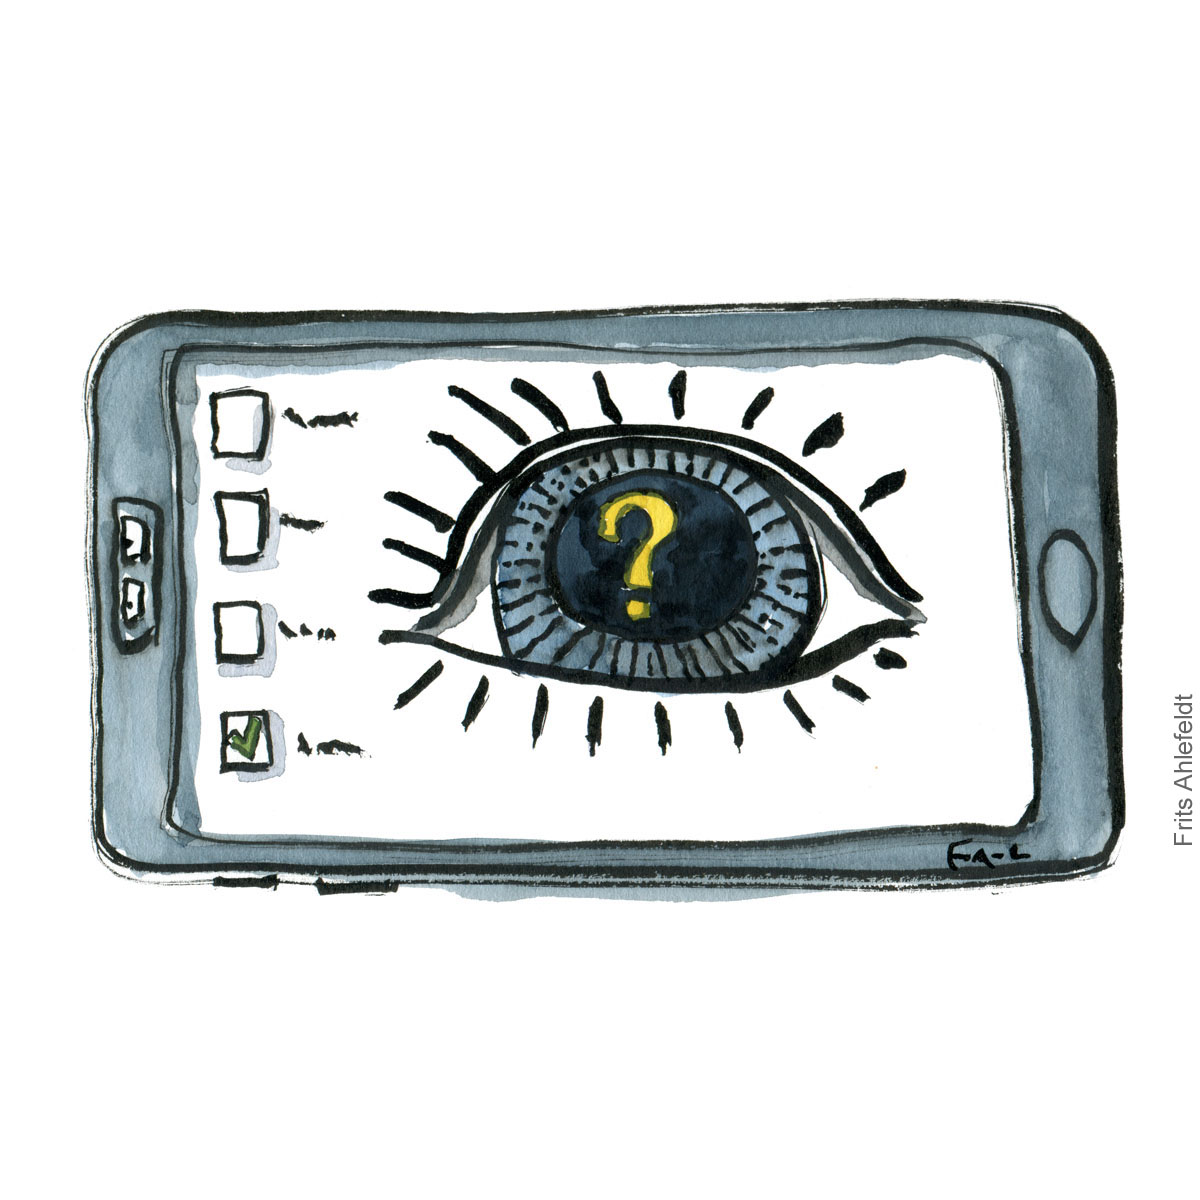 Drawing of a phone with eye in it.